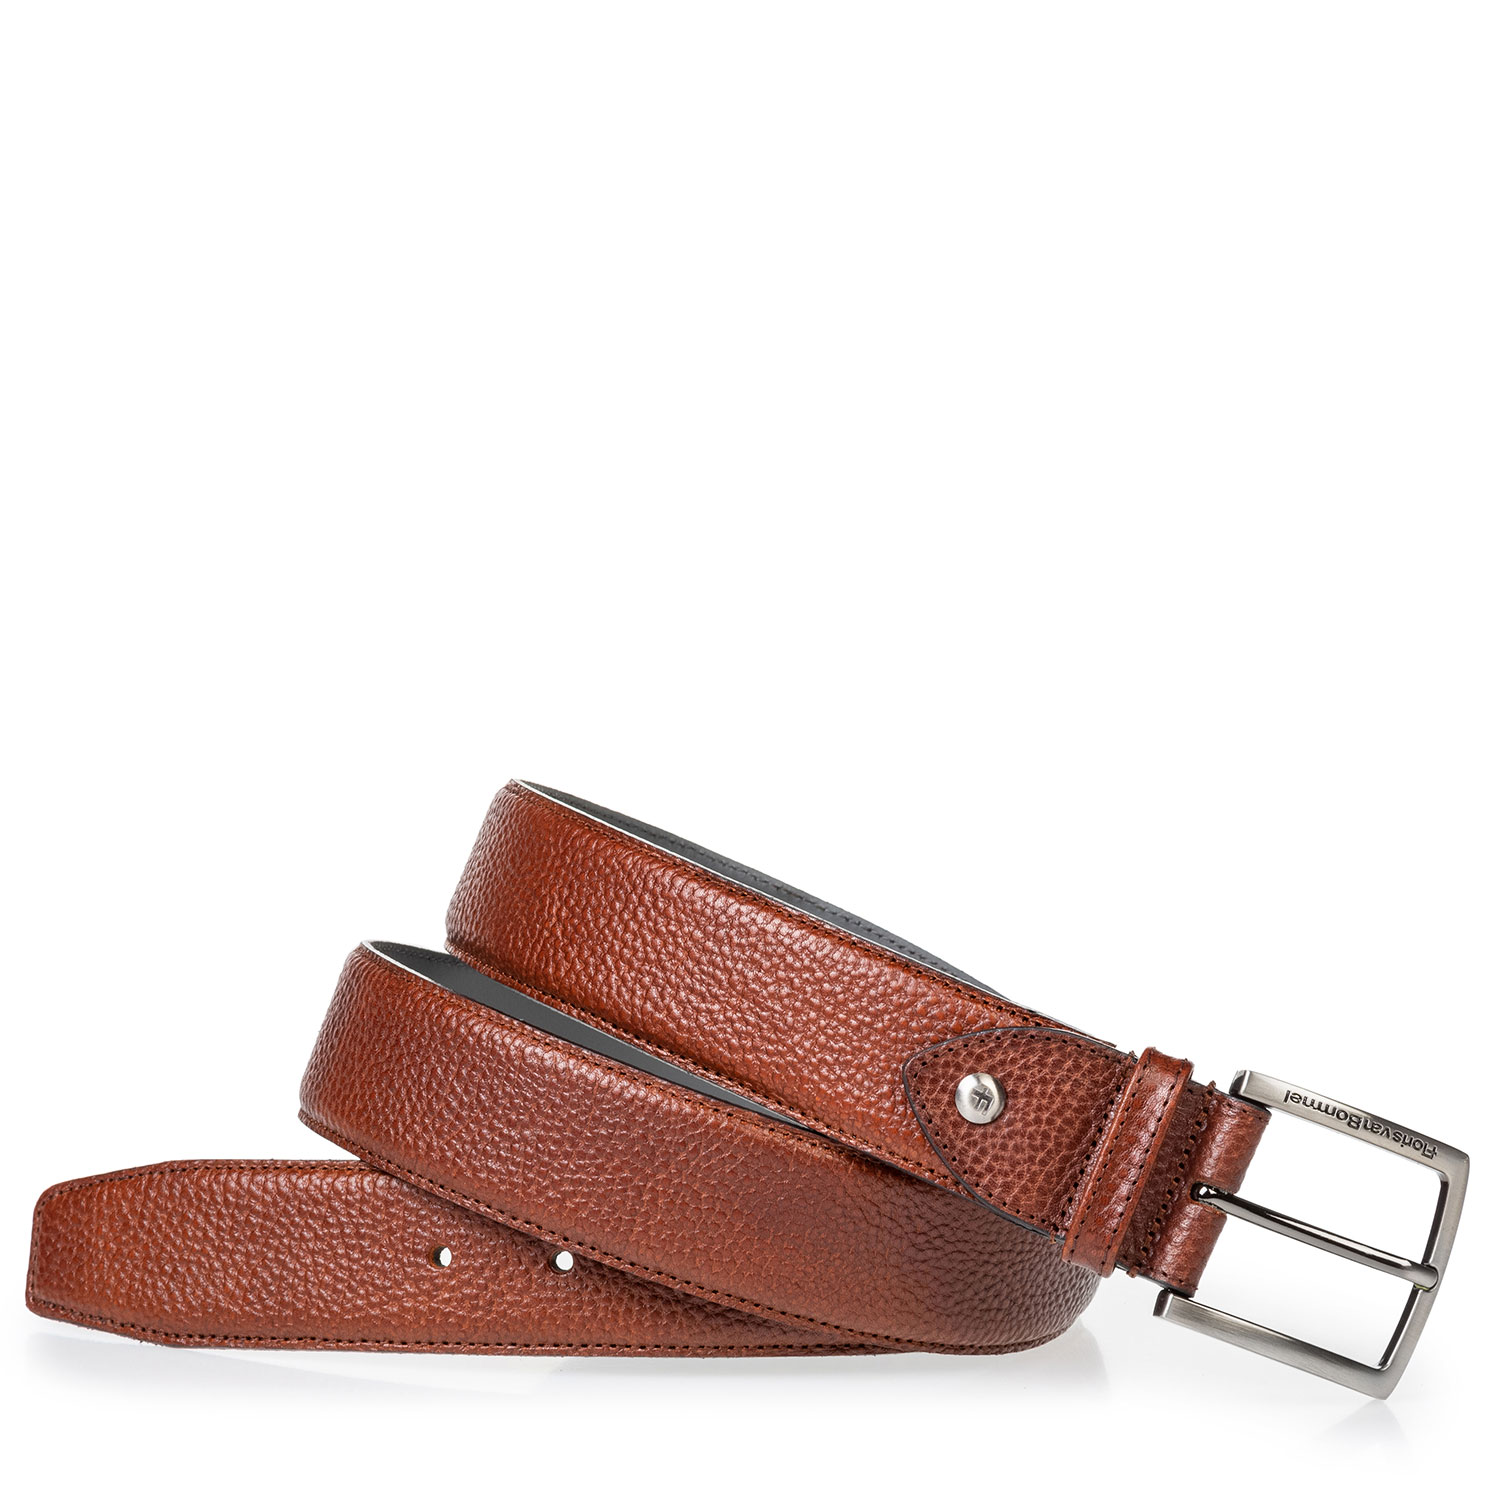 75202/63 - Leather belt cognac with structured pattern